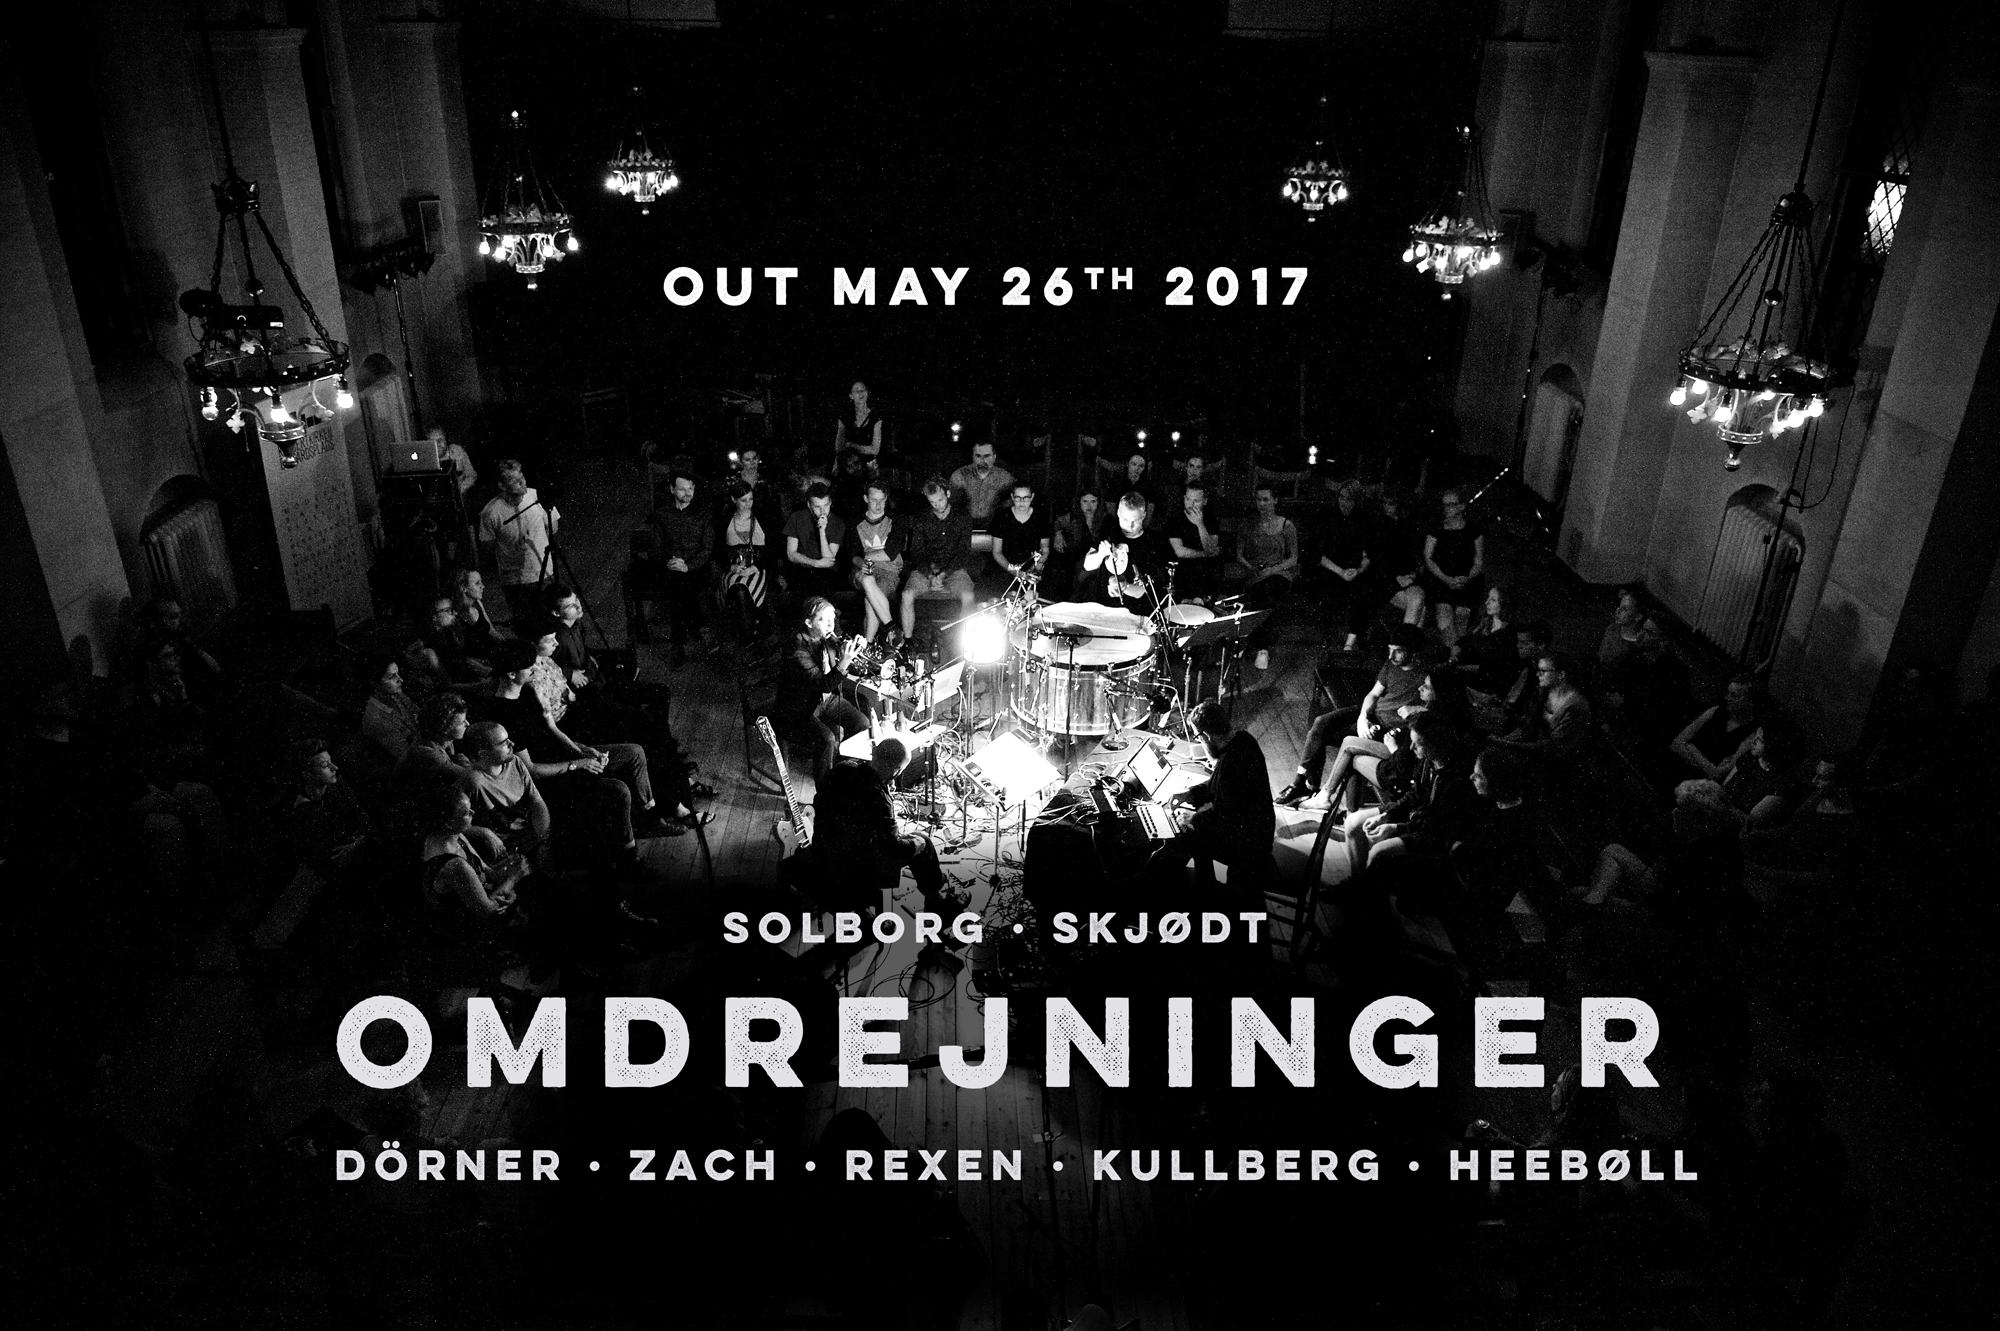 Omdrejninger_OutMay26th